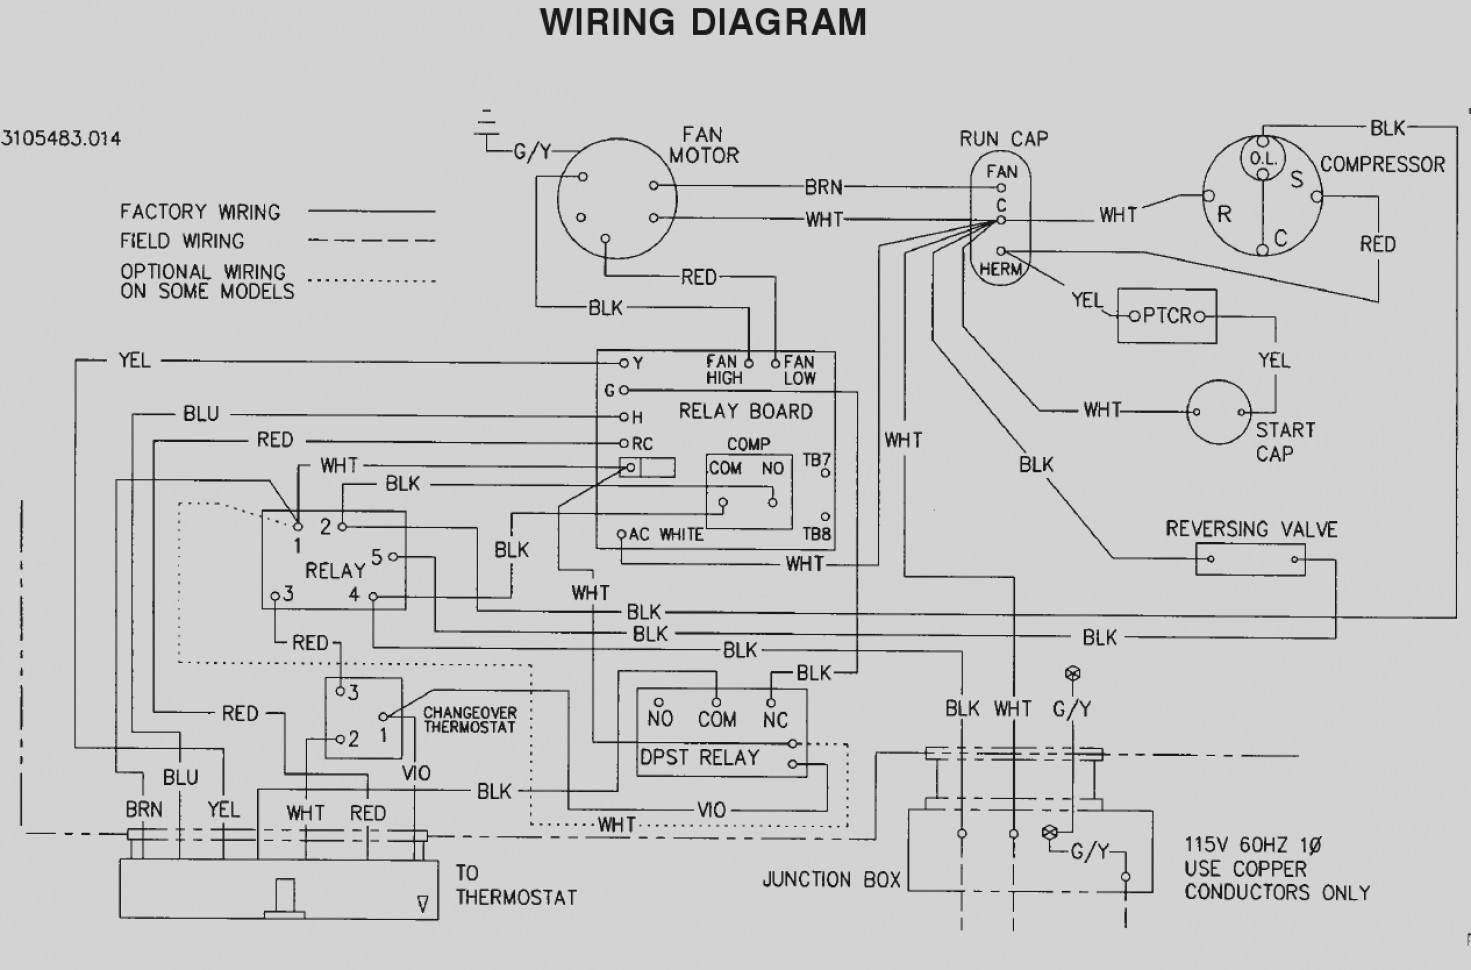 32b5 fan coil thermostat wiring diagram | wiring library  wiring library